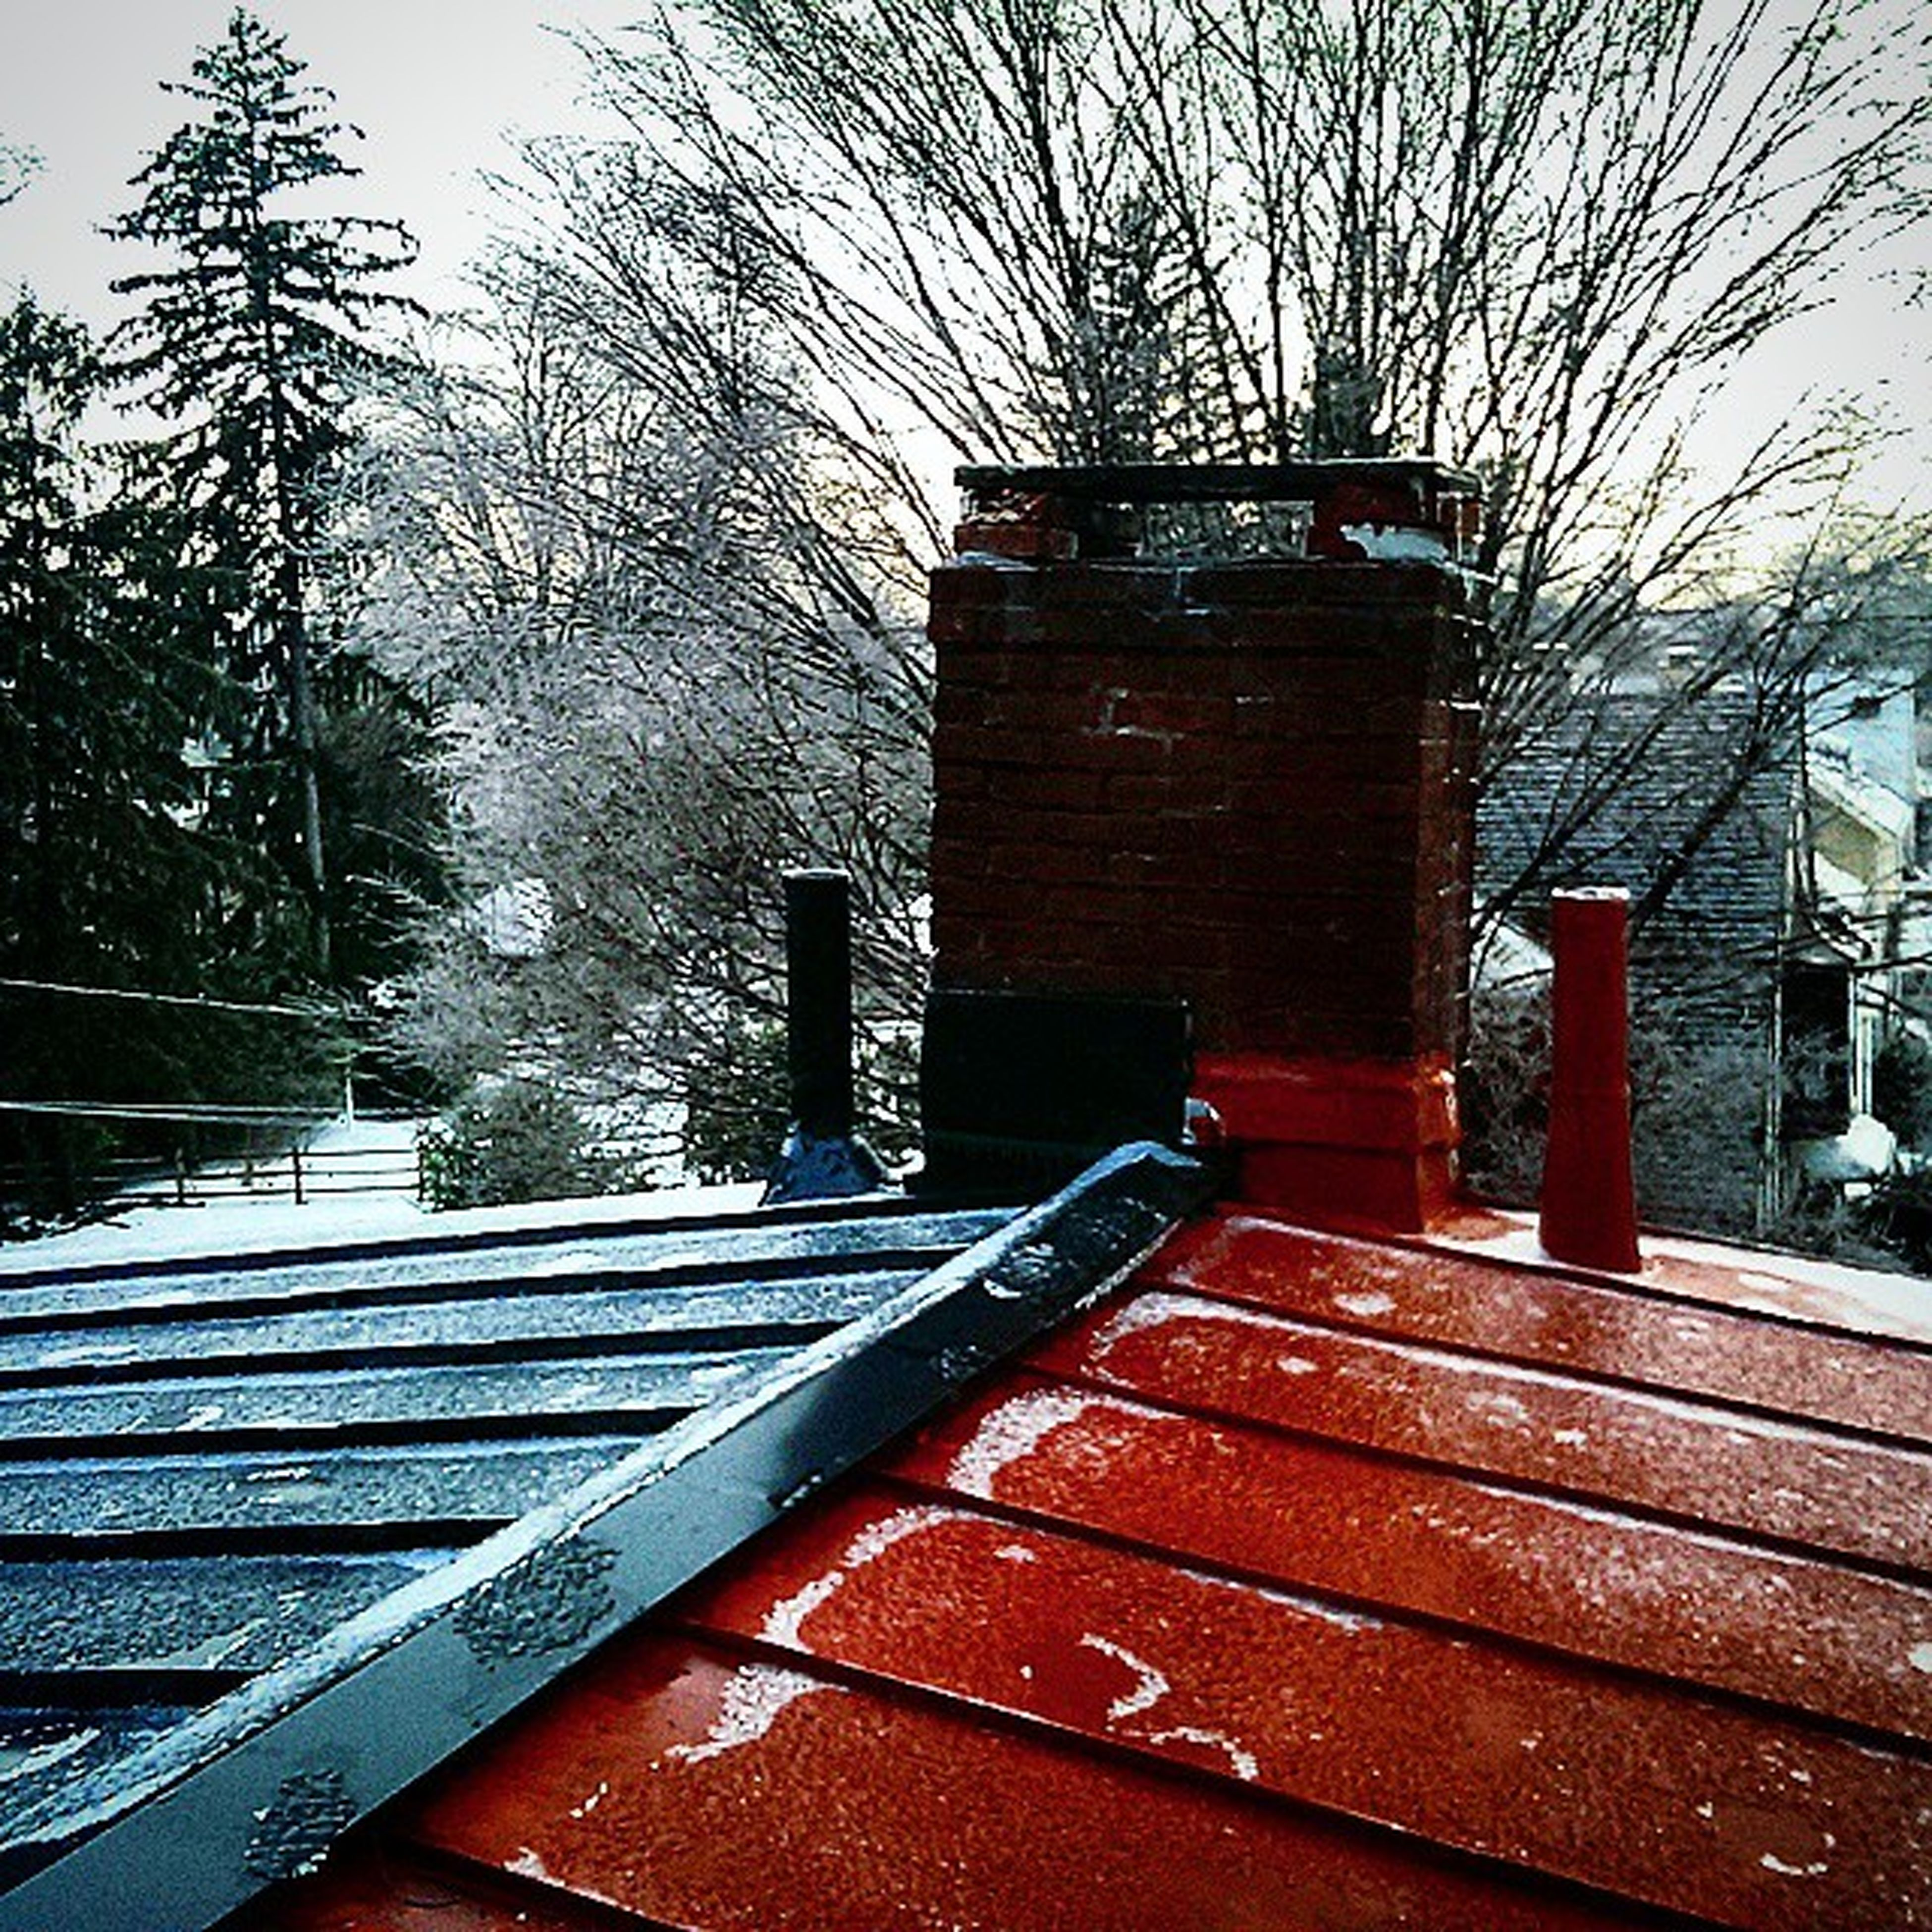 season, cold temperature, tree, winter, weather, snow, bare tree, built structure, building exterior, architecture, water, frozen, focus on foreground, wood - material, railing, rain, day, house, wet, no people